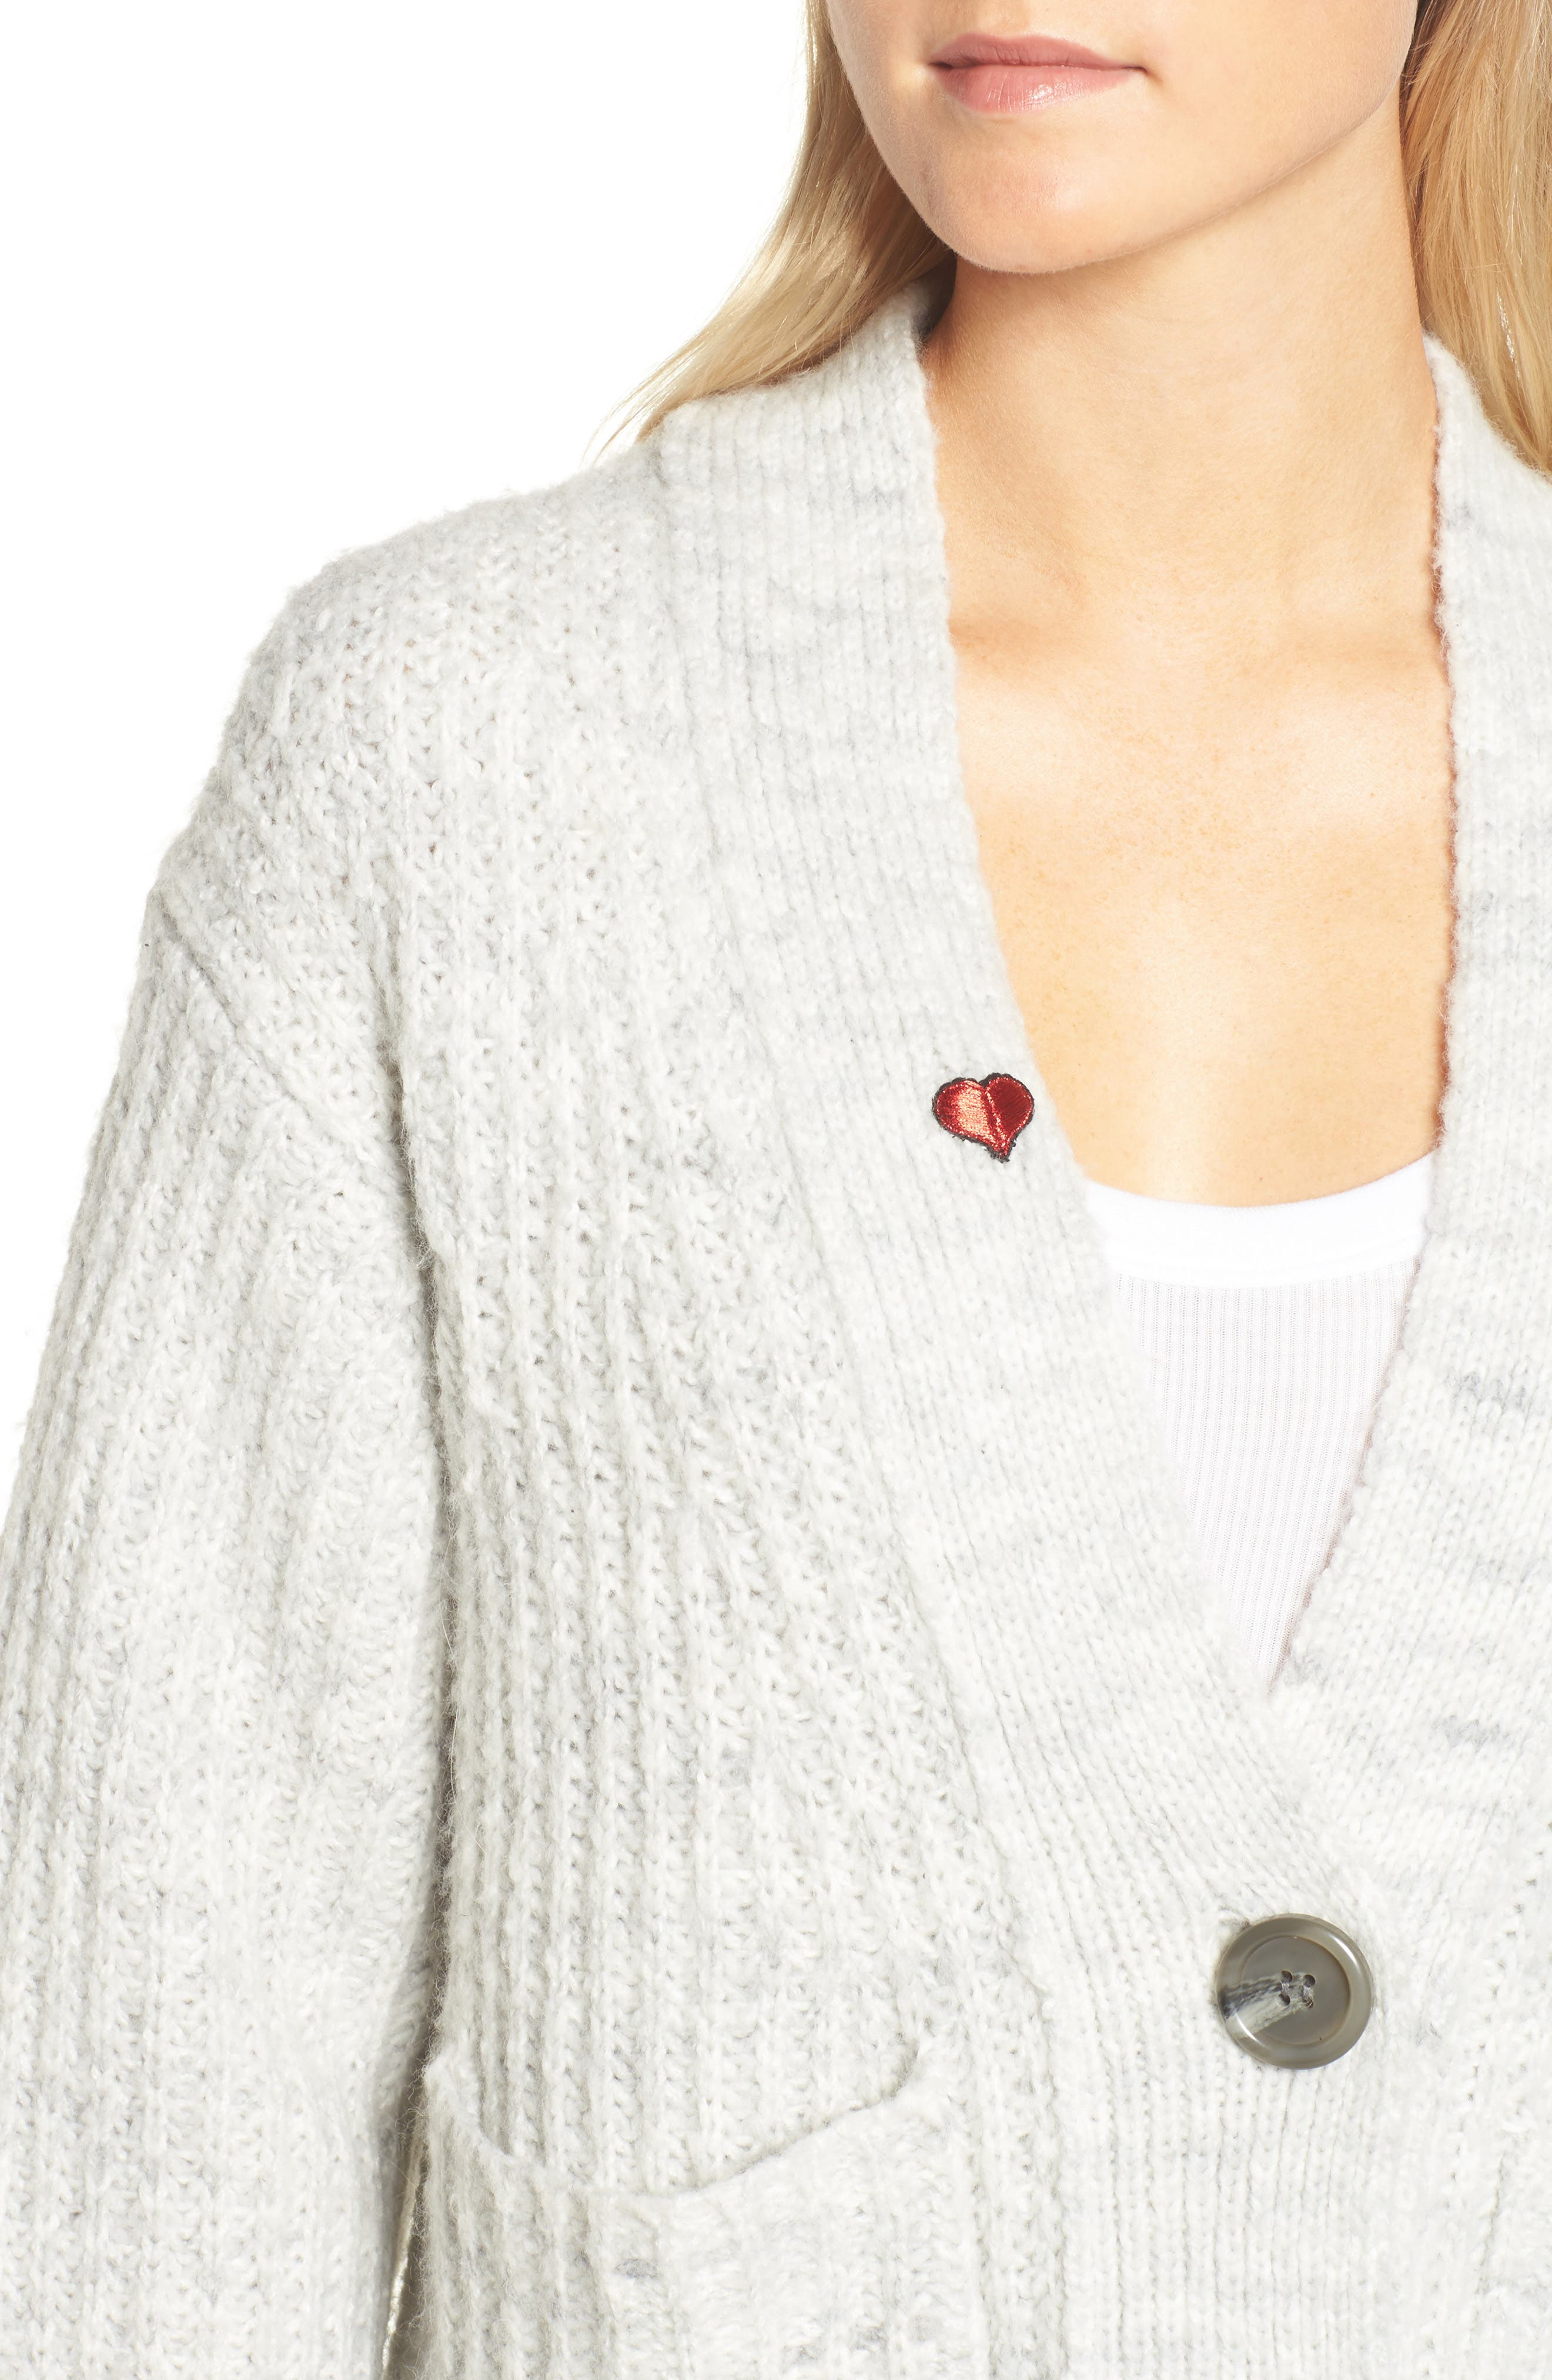 Oversize Cardigan,                             Alternate thumbnail 4, color,                             020